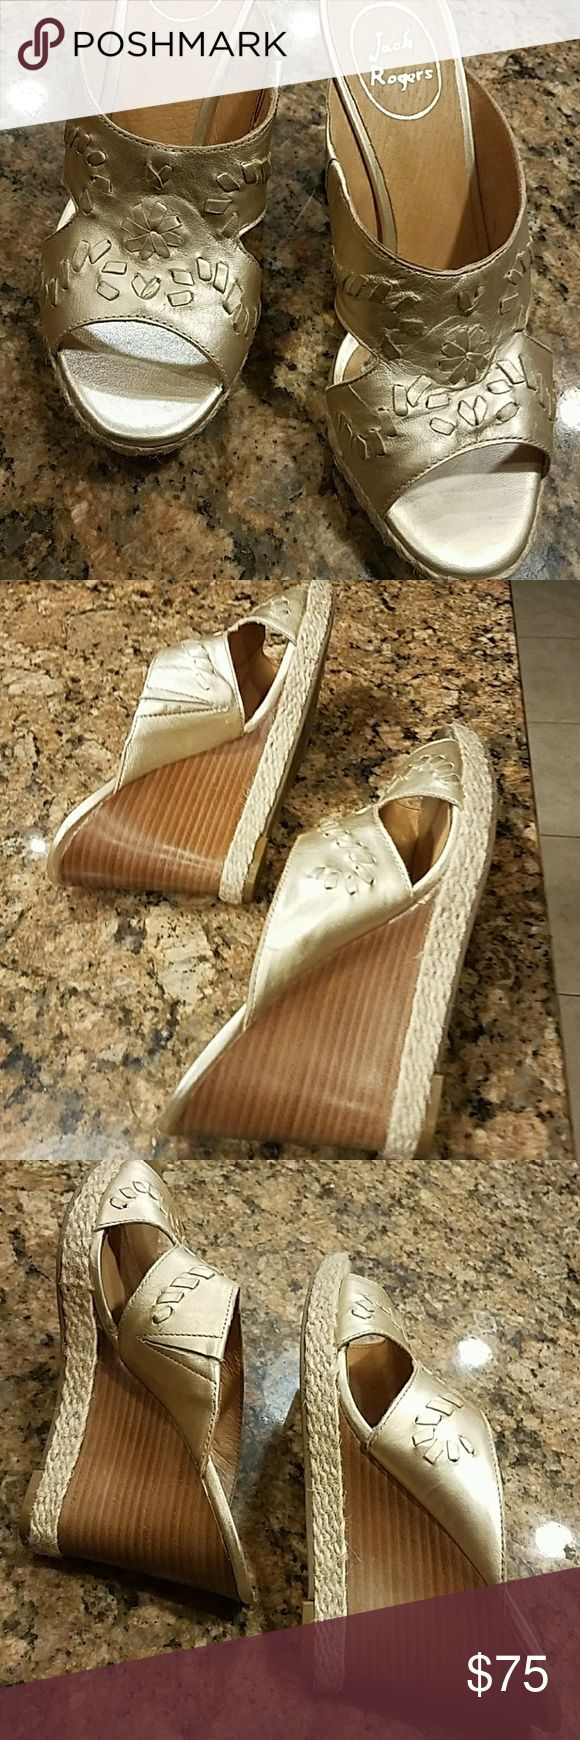 Jack Rogers Sophia Wedges New, unworn, perfect condition, size 7, Jack Rogers  leather sandles, color is Platinum , looks goldish to me Jack Rogers Shoes